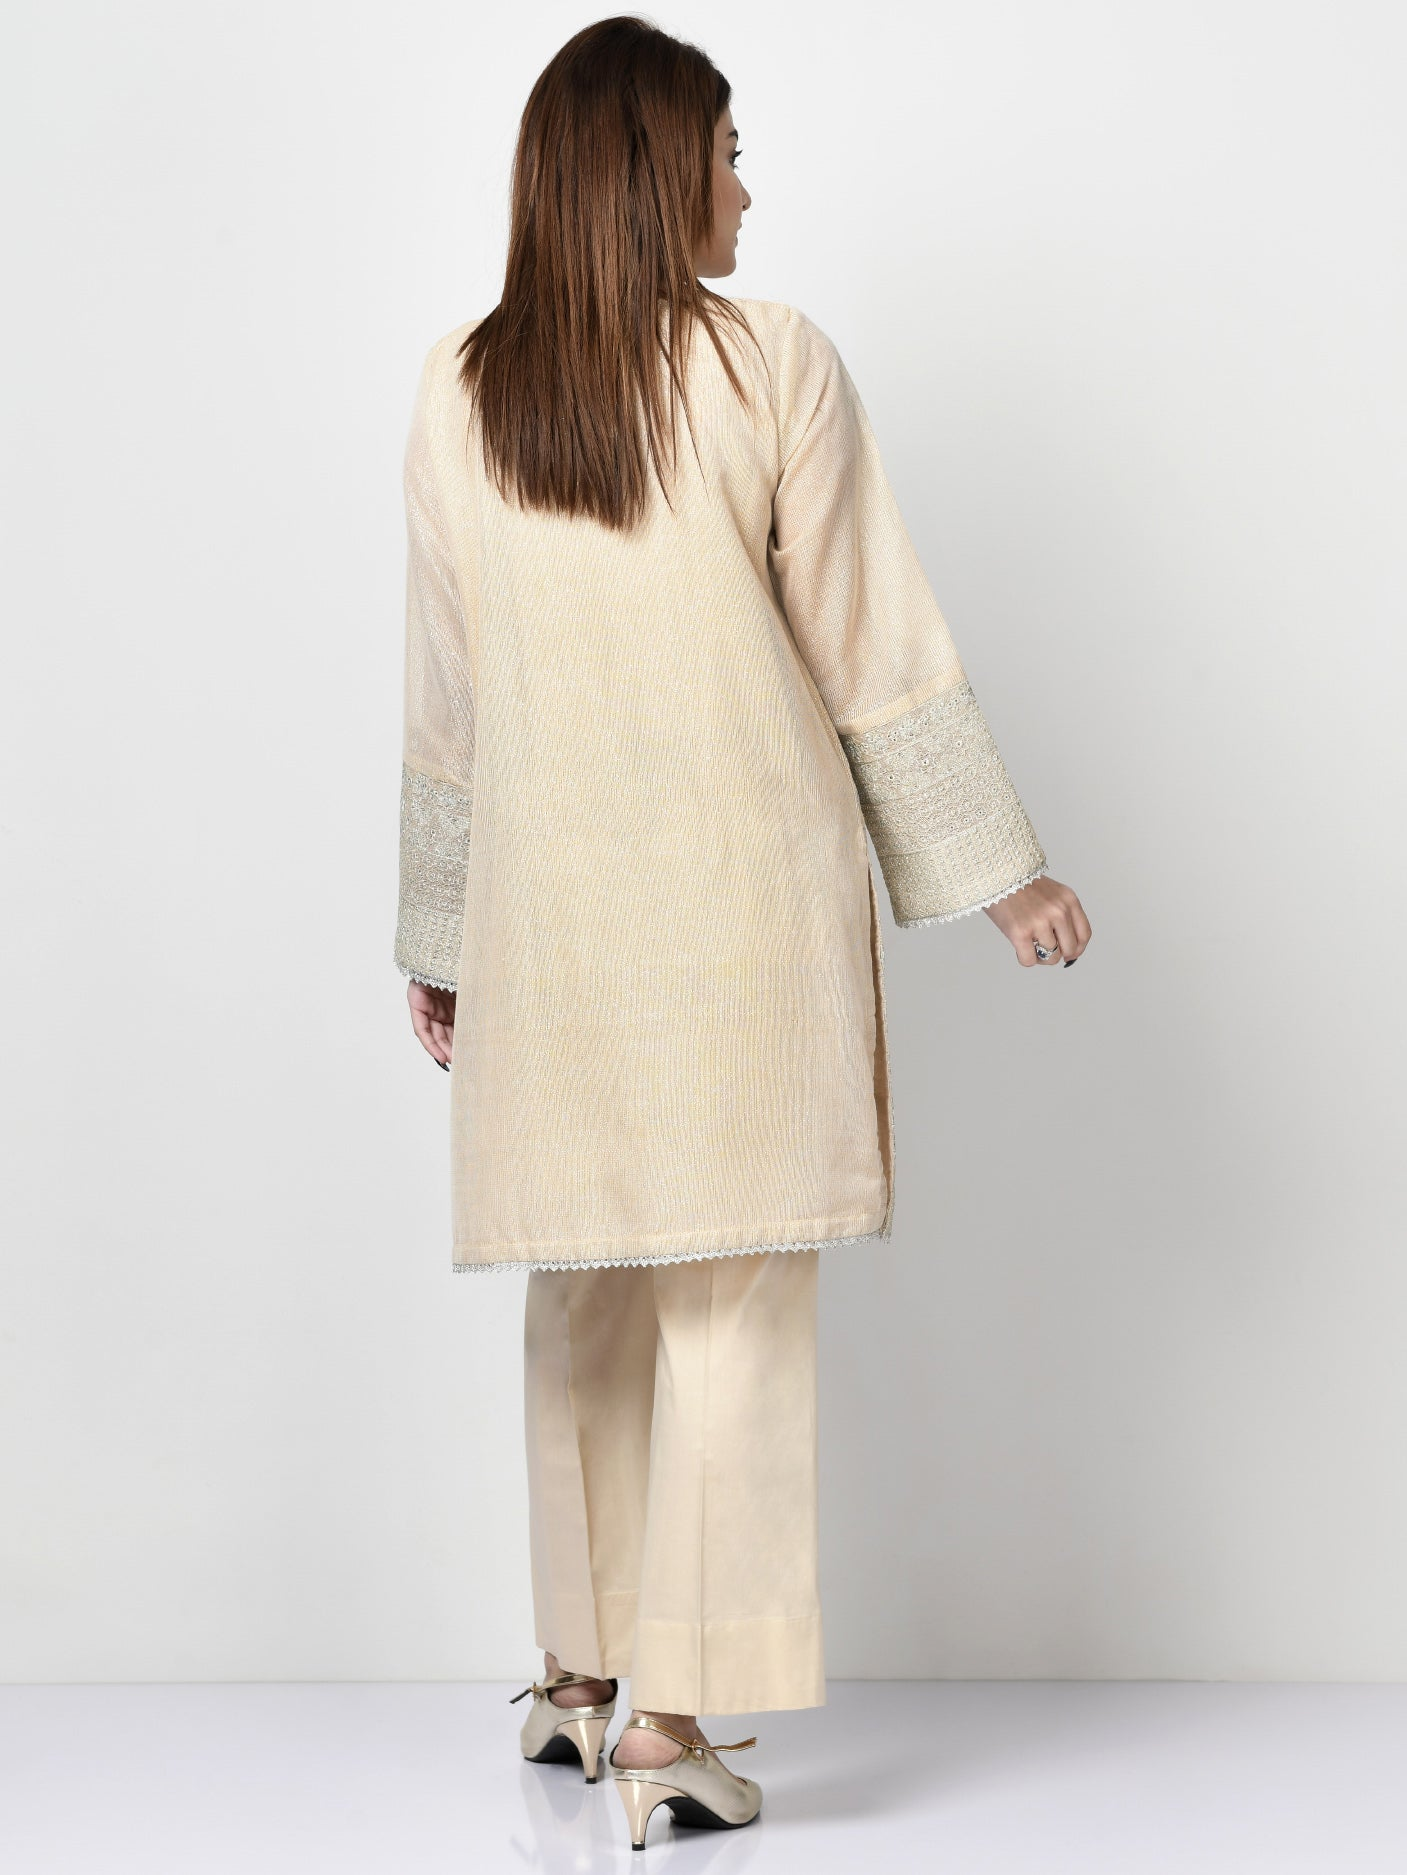 Embroidered Cotton Net Shirt